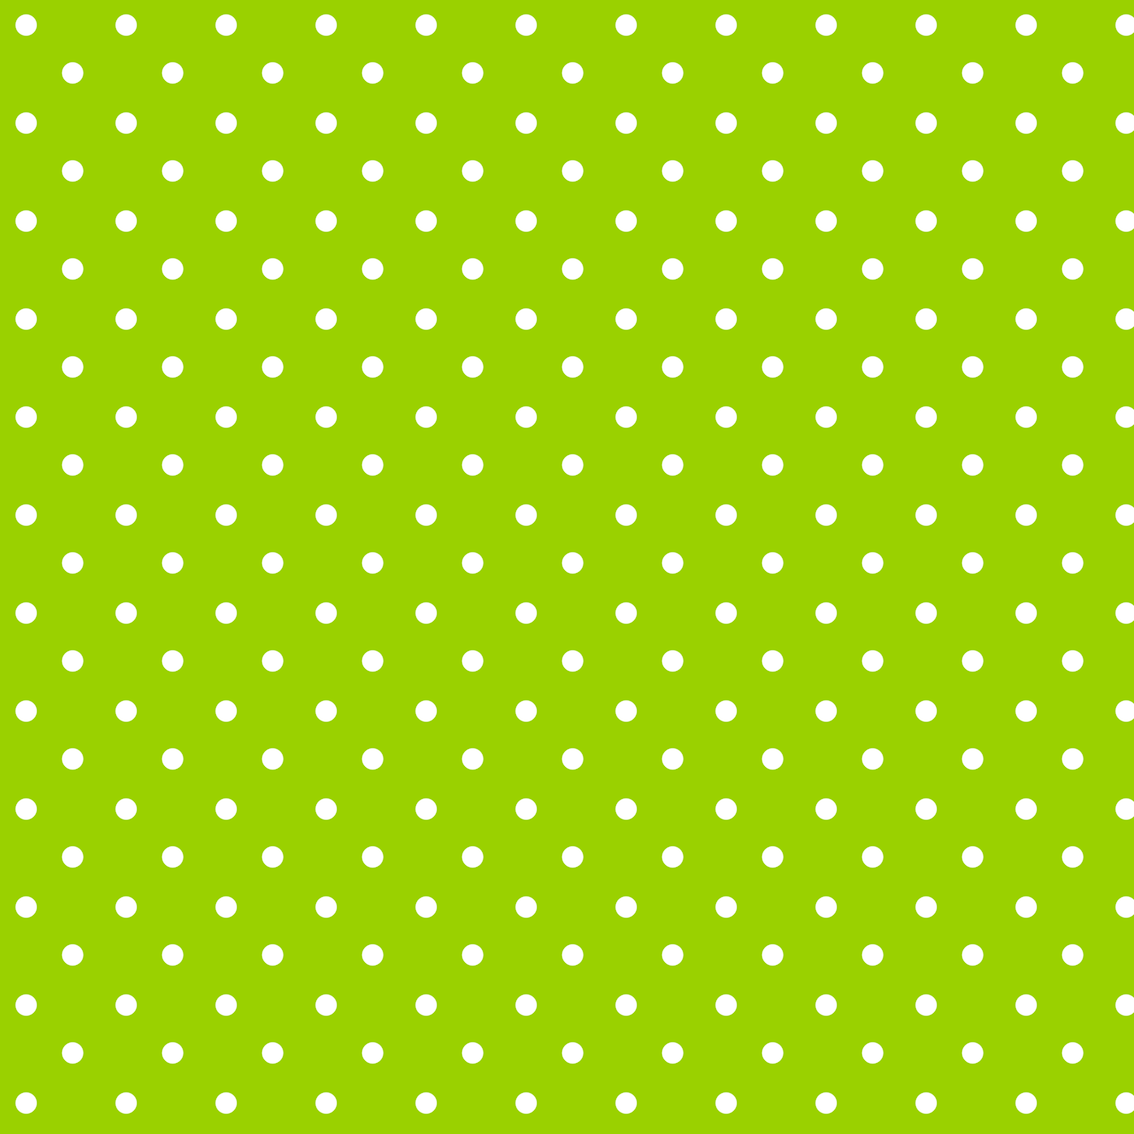 7 Images of Green Polka Dot Printable